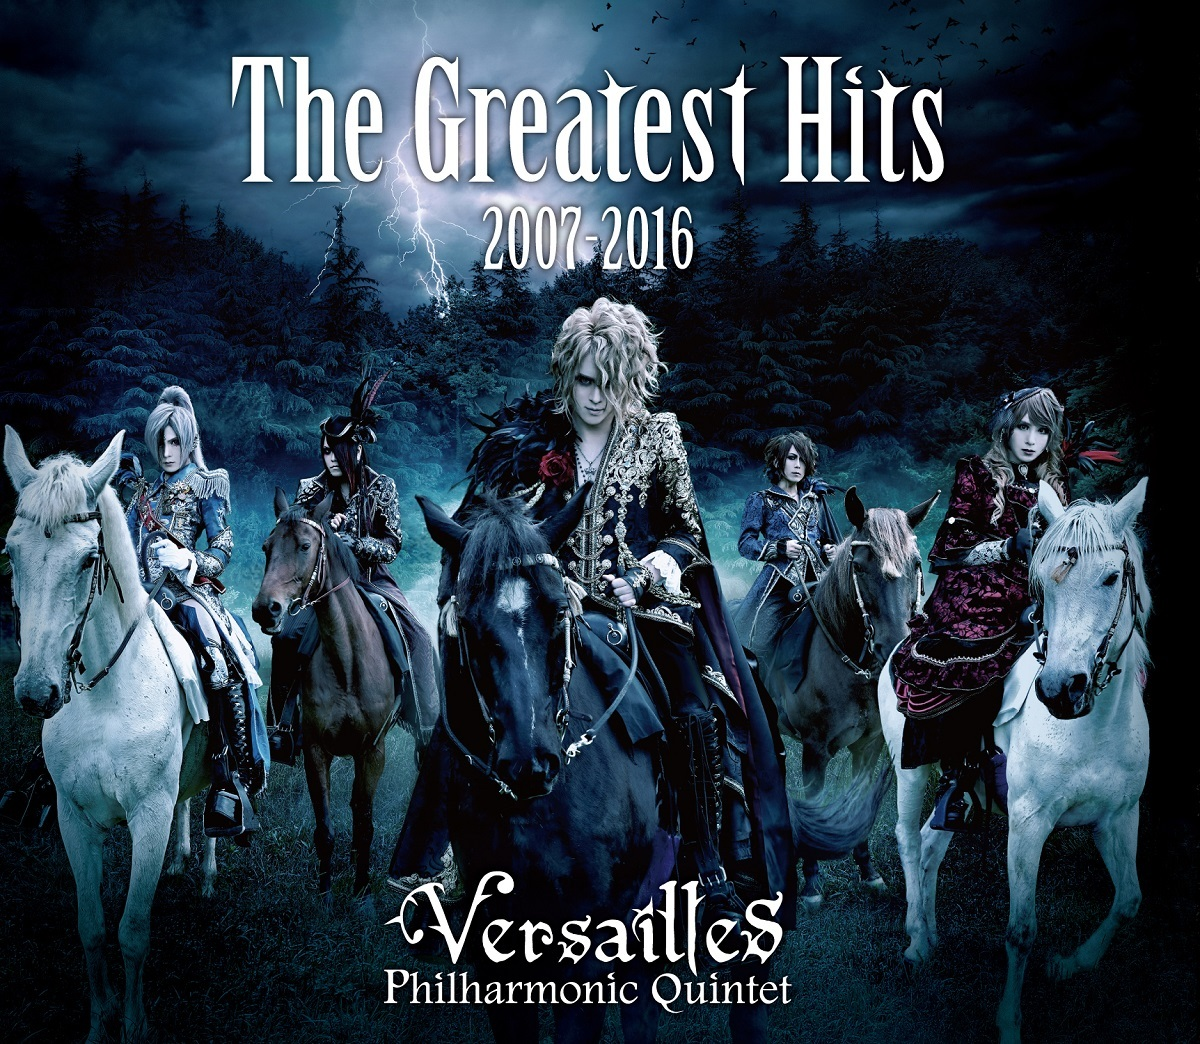 Versailles『The Greatest Hits 2007-2016』初回盤